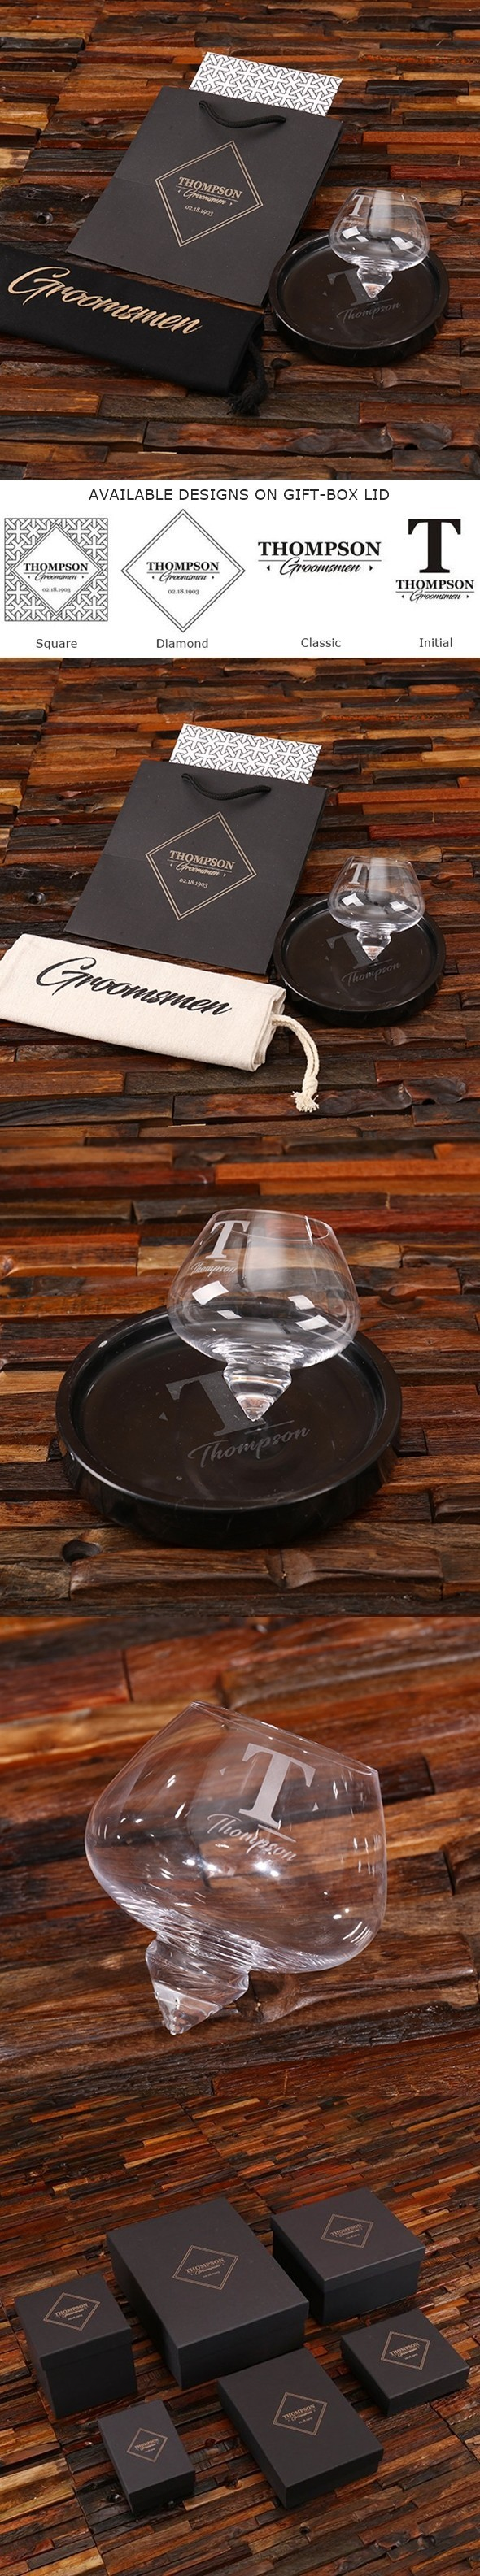 Personalized Rocking Whiskey Glass and Round Marble Tray in Gift-Box